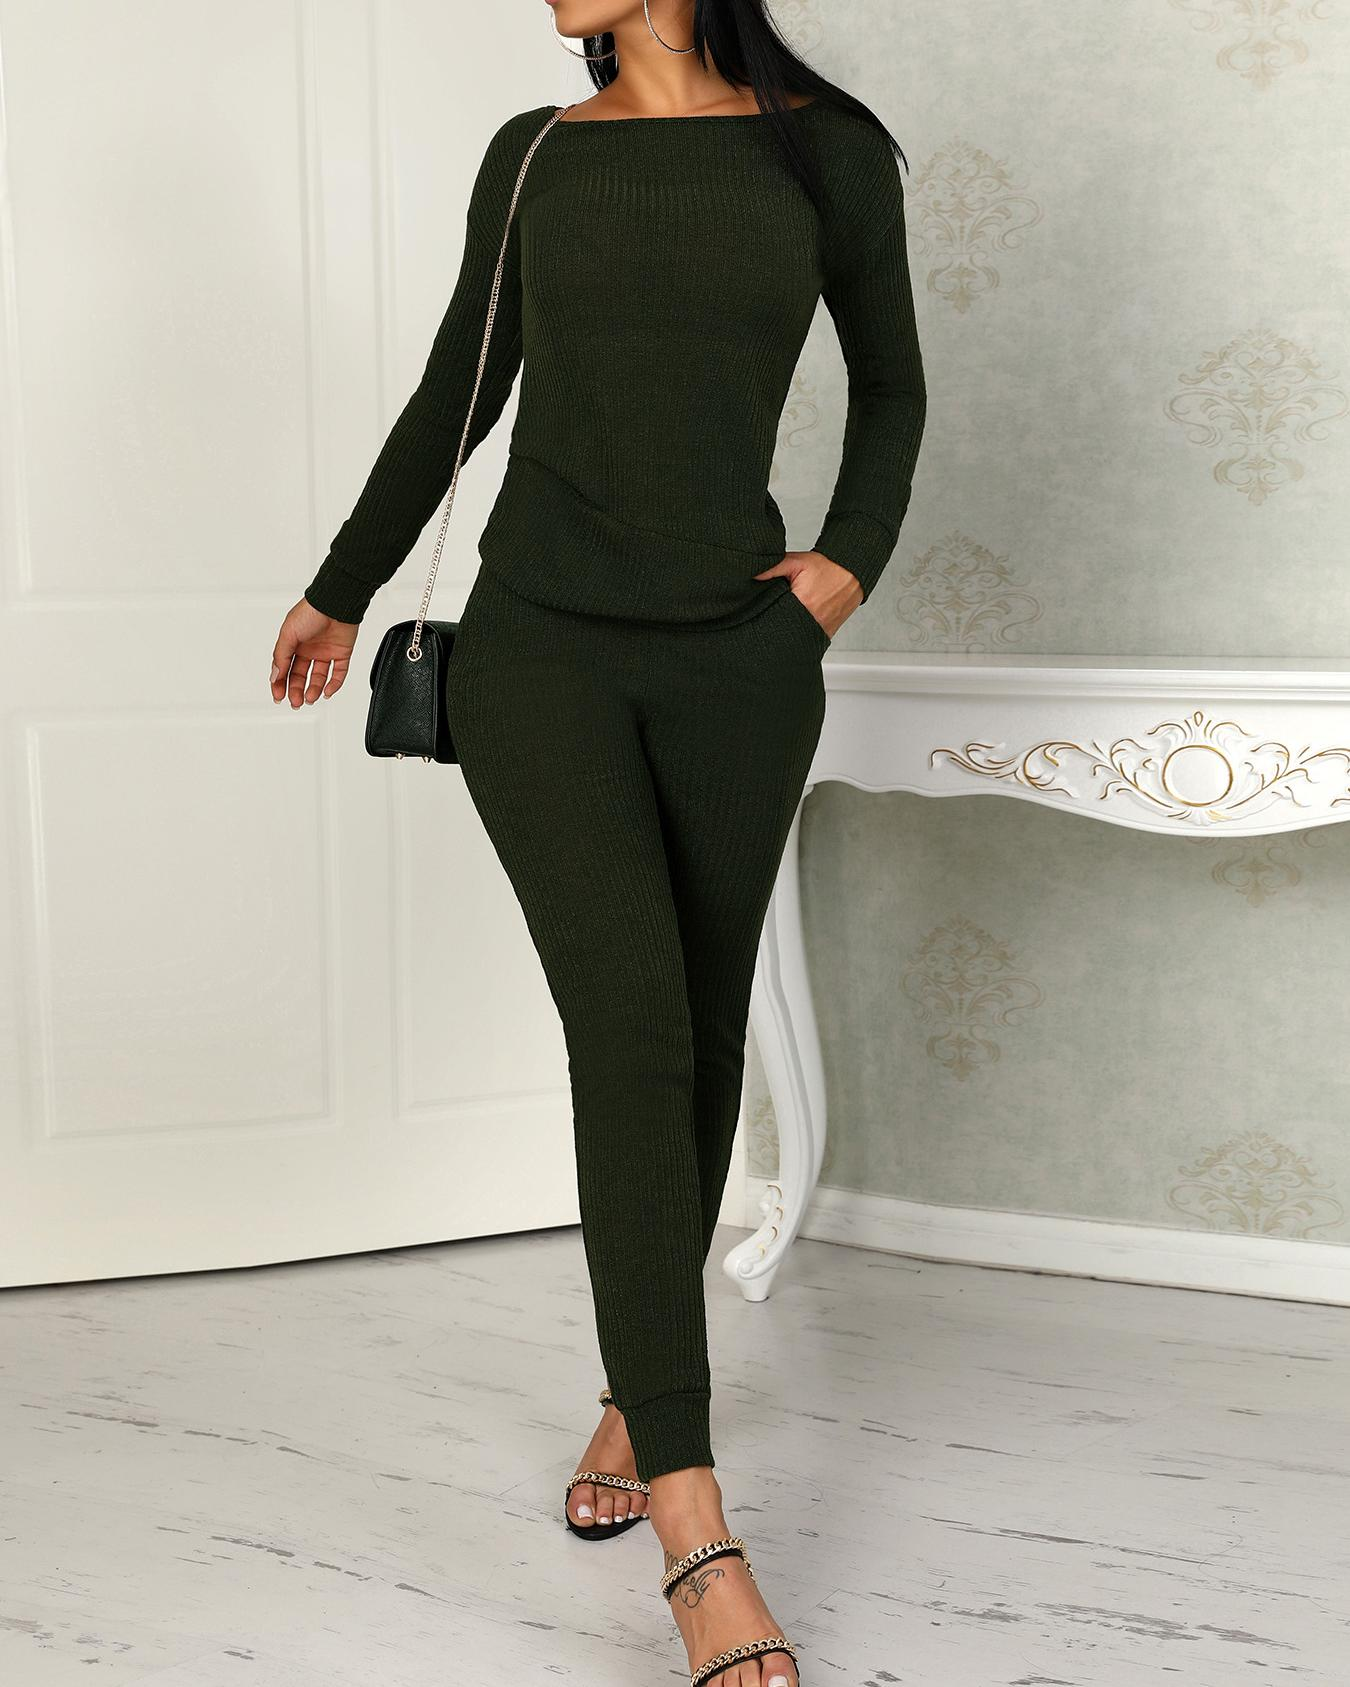 Long Sleeve Drawstring Knitted Top & Pants Set, Army green